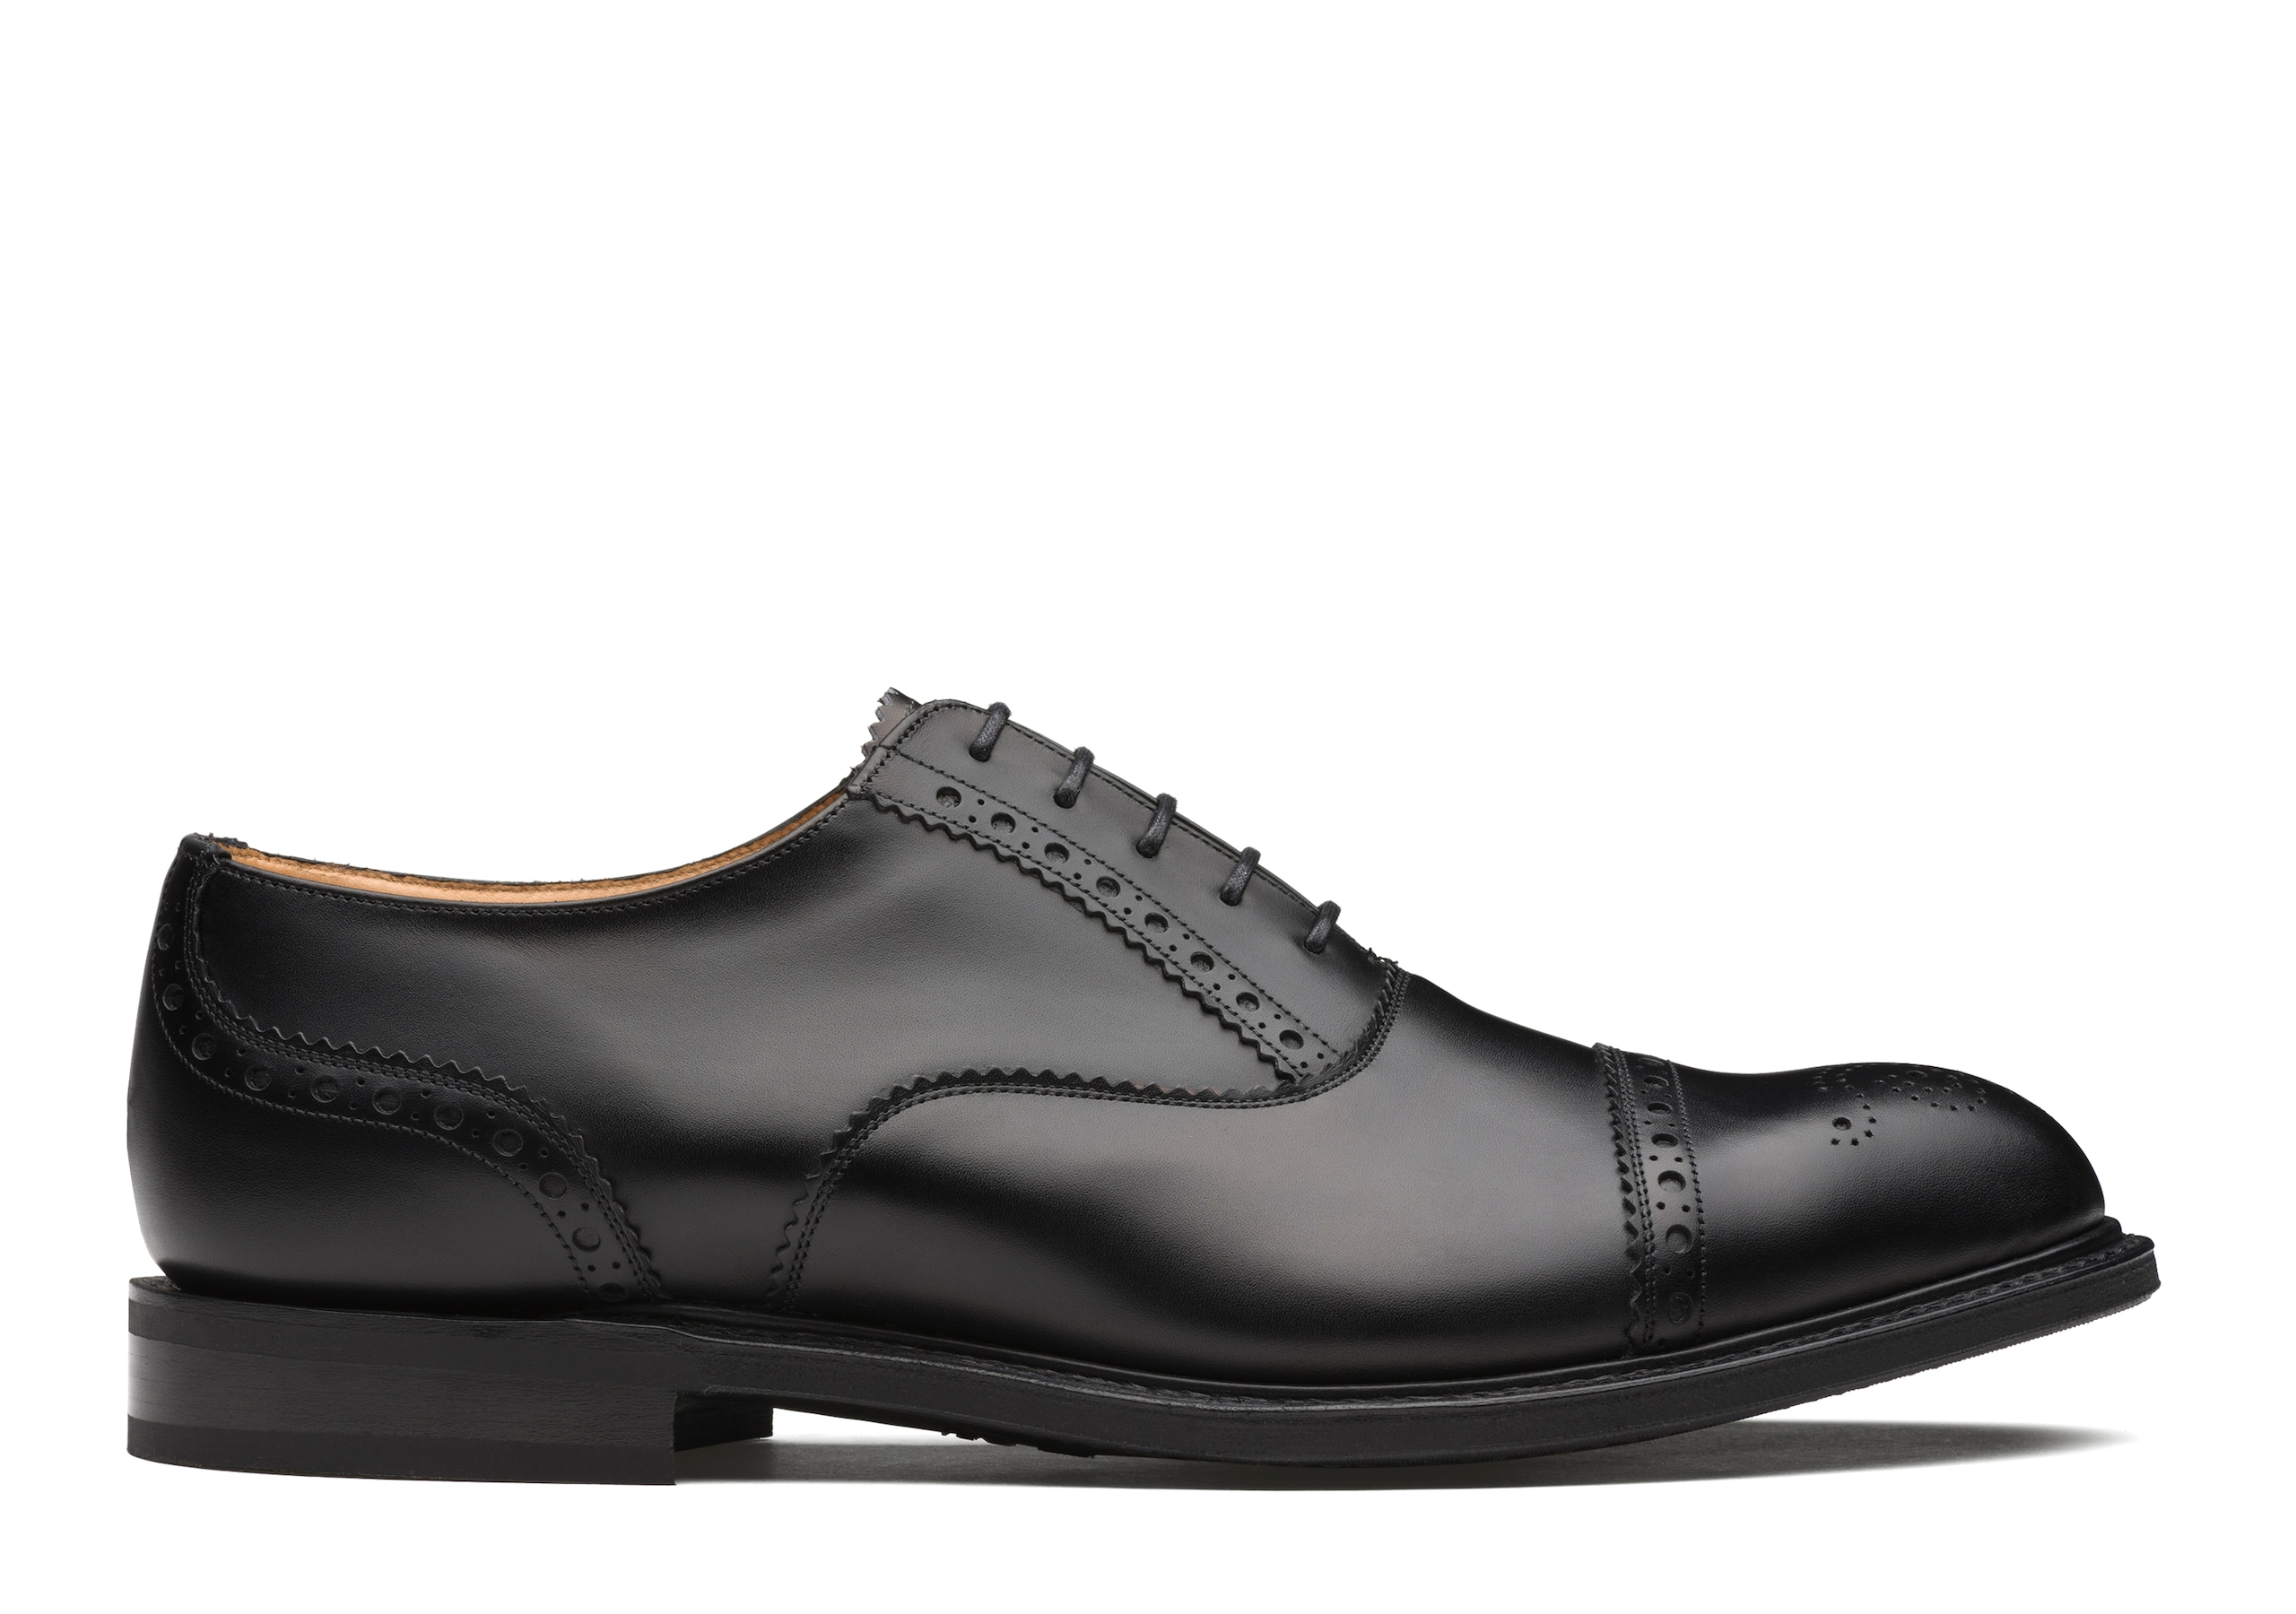 Waltham Church's Calf Leather Oxford Brogue Black